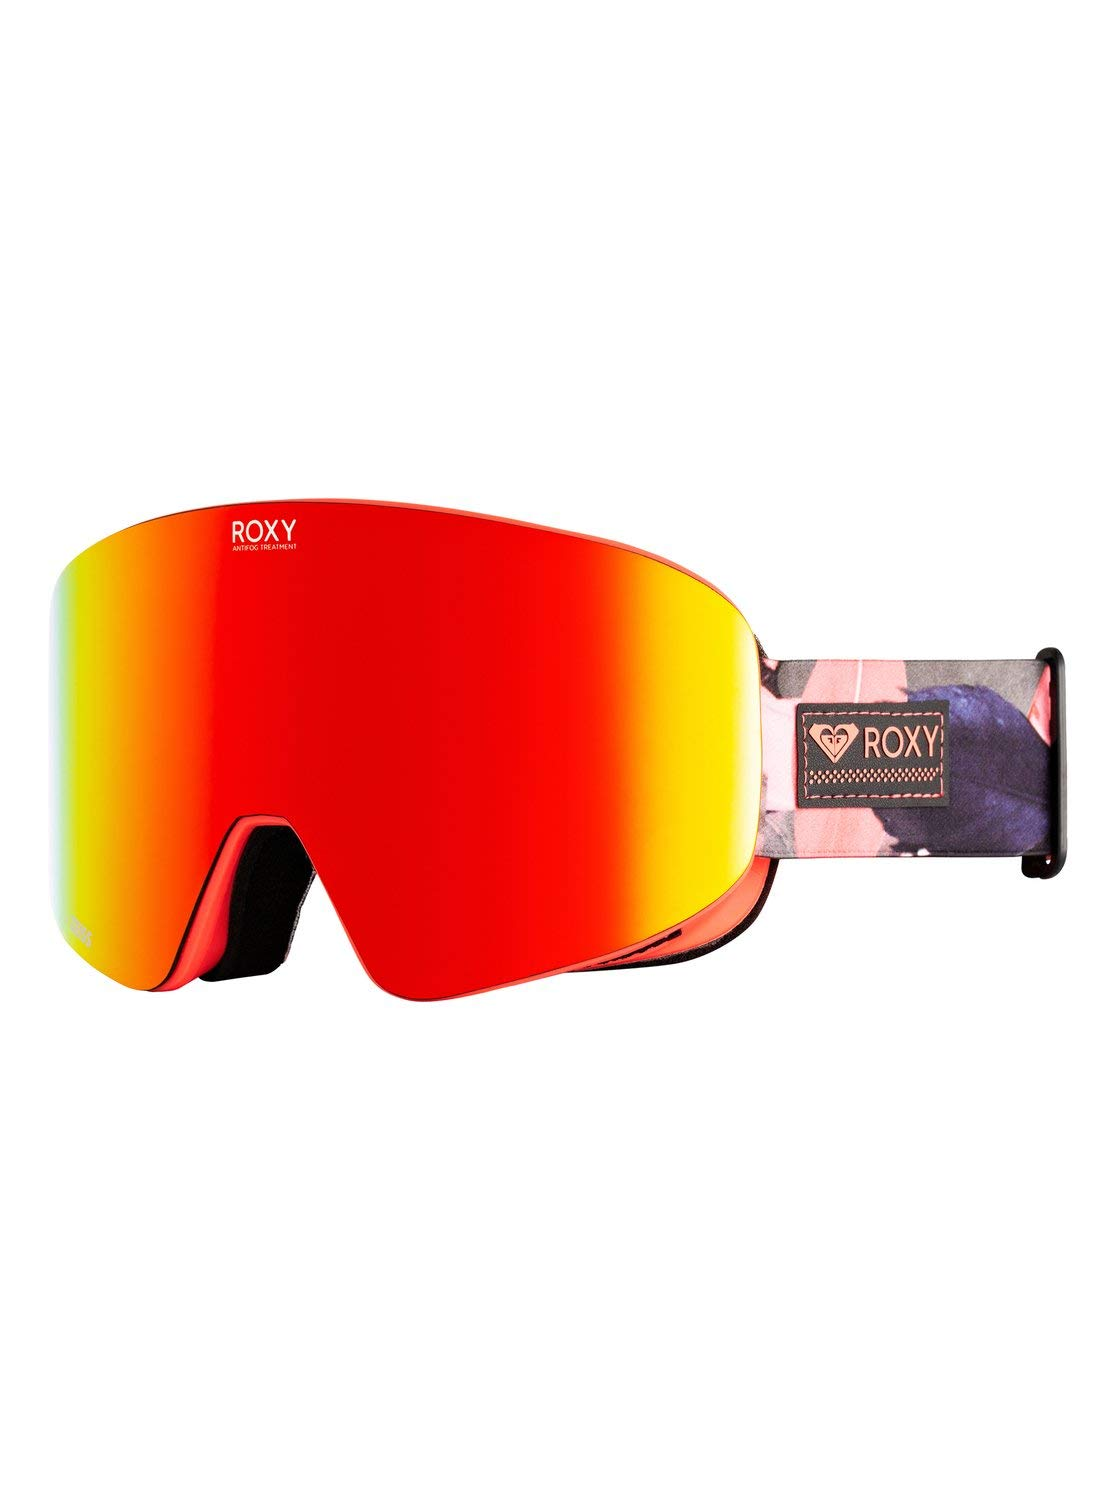 Roxy Womens Feelin - Snowboard/Ski Goggles - Women - One Size - Pink Living Coral Plumes One Size by Roxy